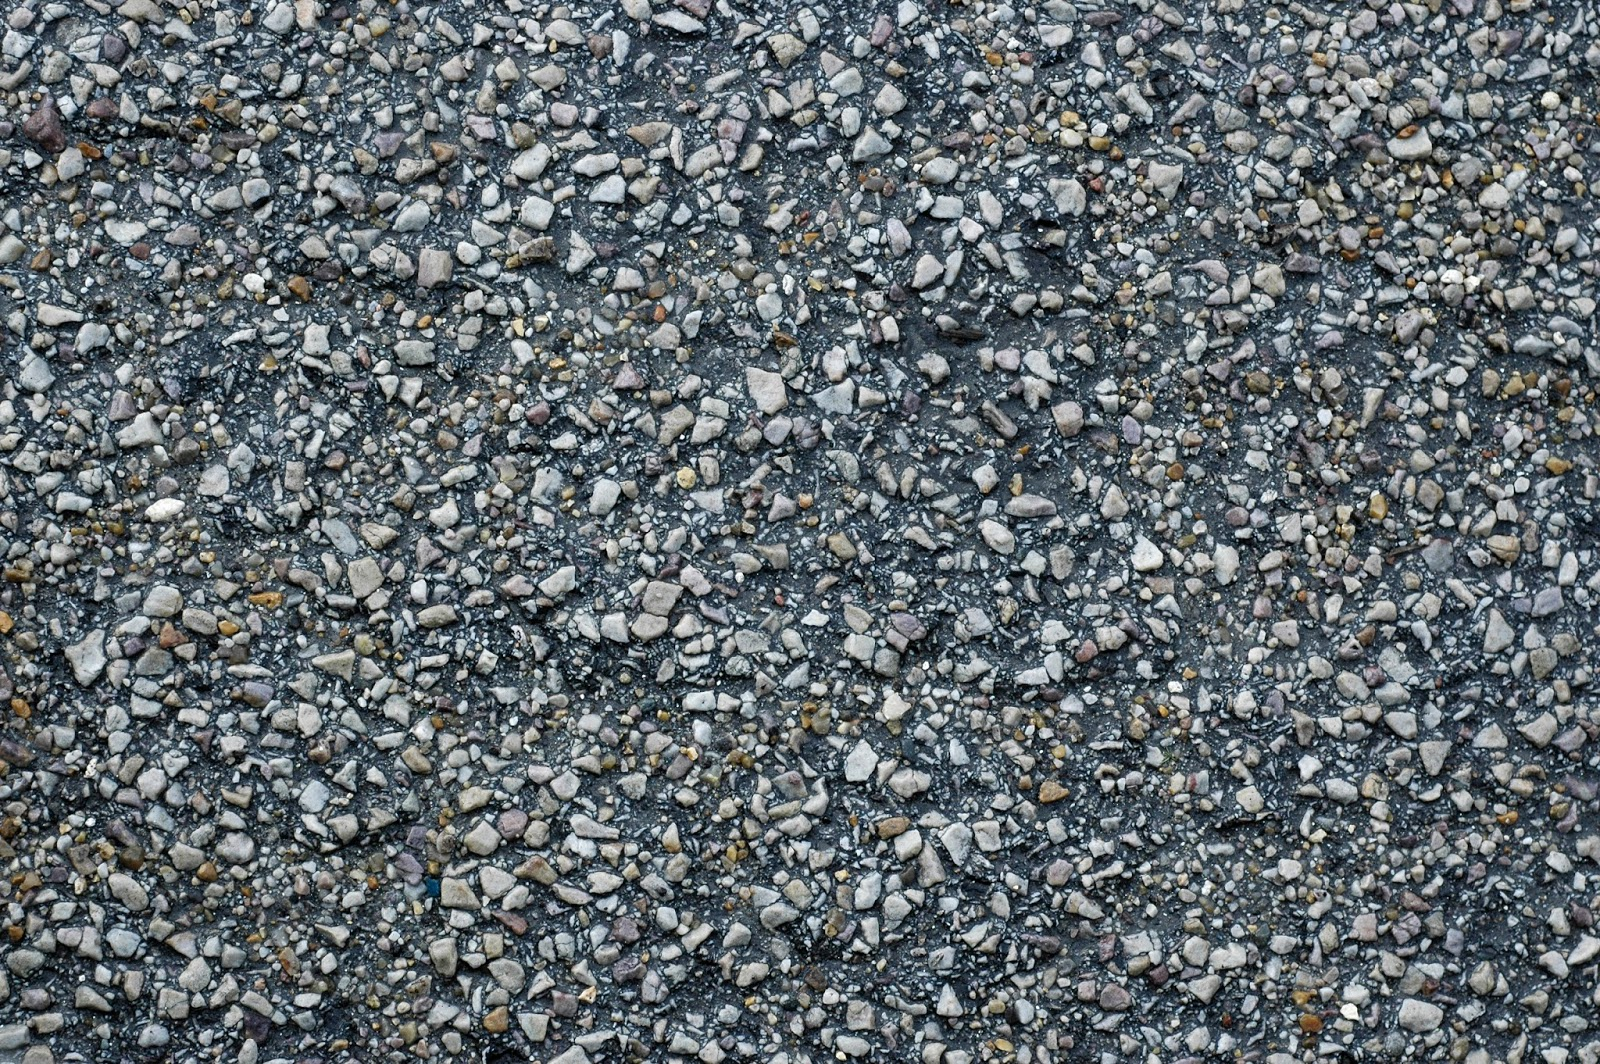 Asphalt Vismat Texture For Vray - 3D Visualization Tools